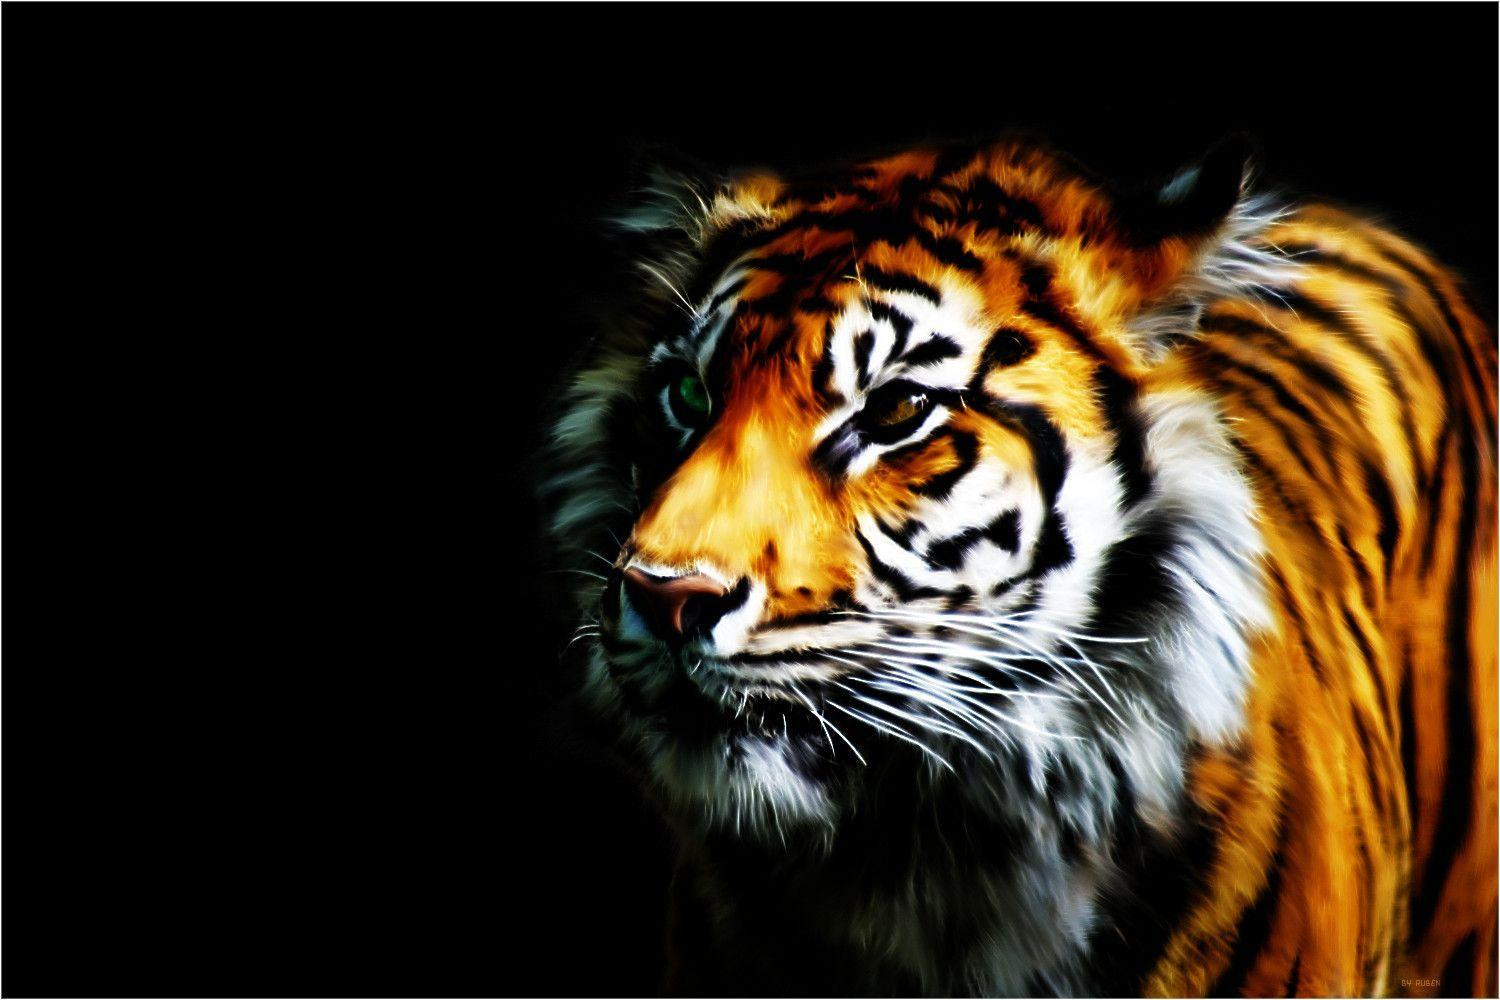 Tiger Wallpaper by Rubenski87 on DeviantArt